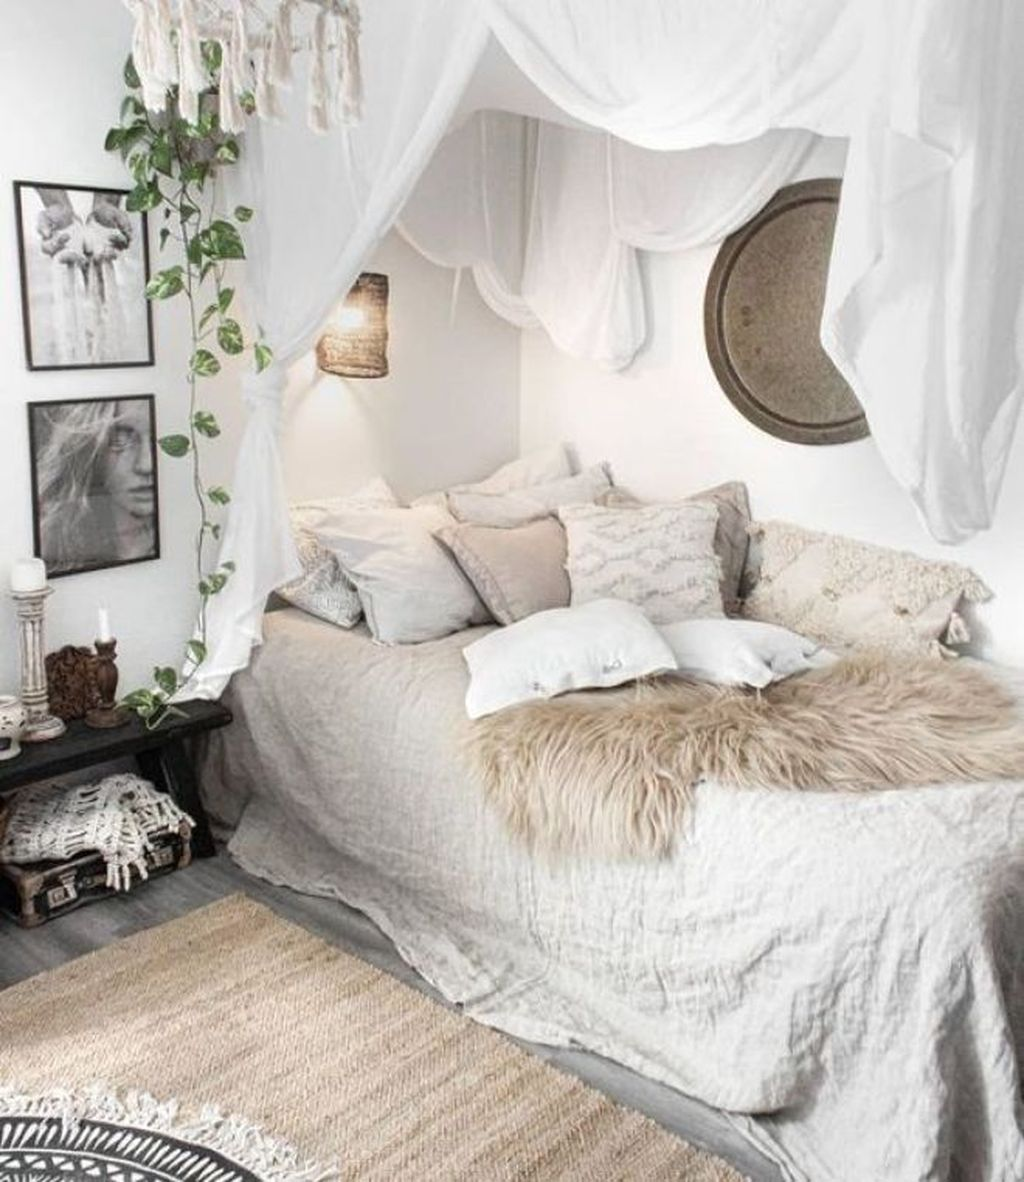 Awesome Boho Chic Bedroom Decor Ideas 18